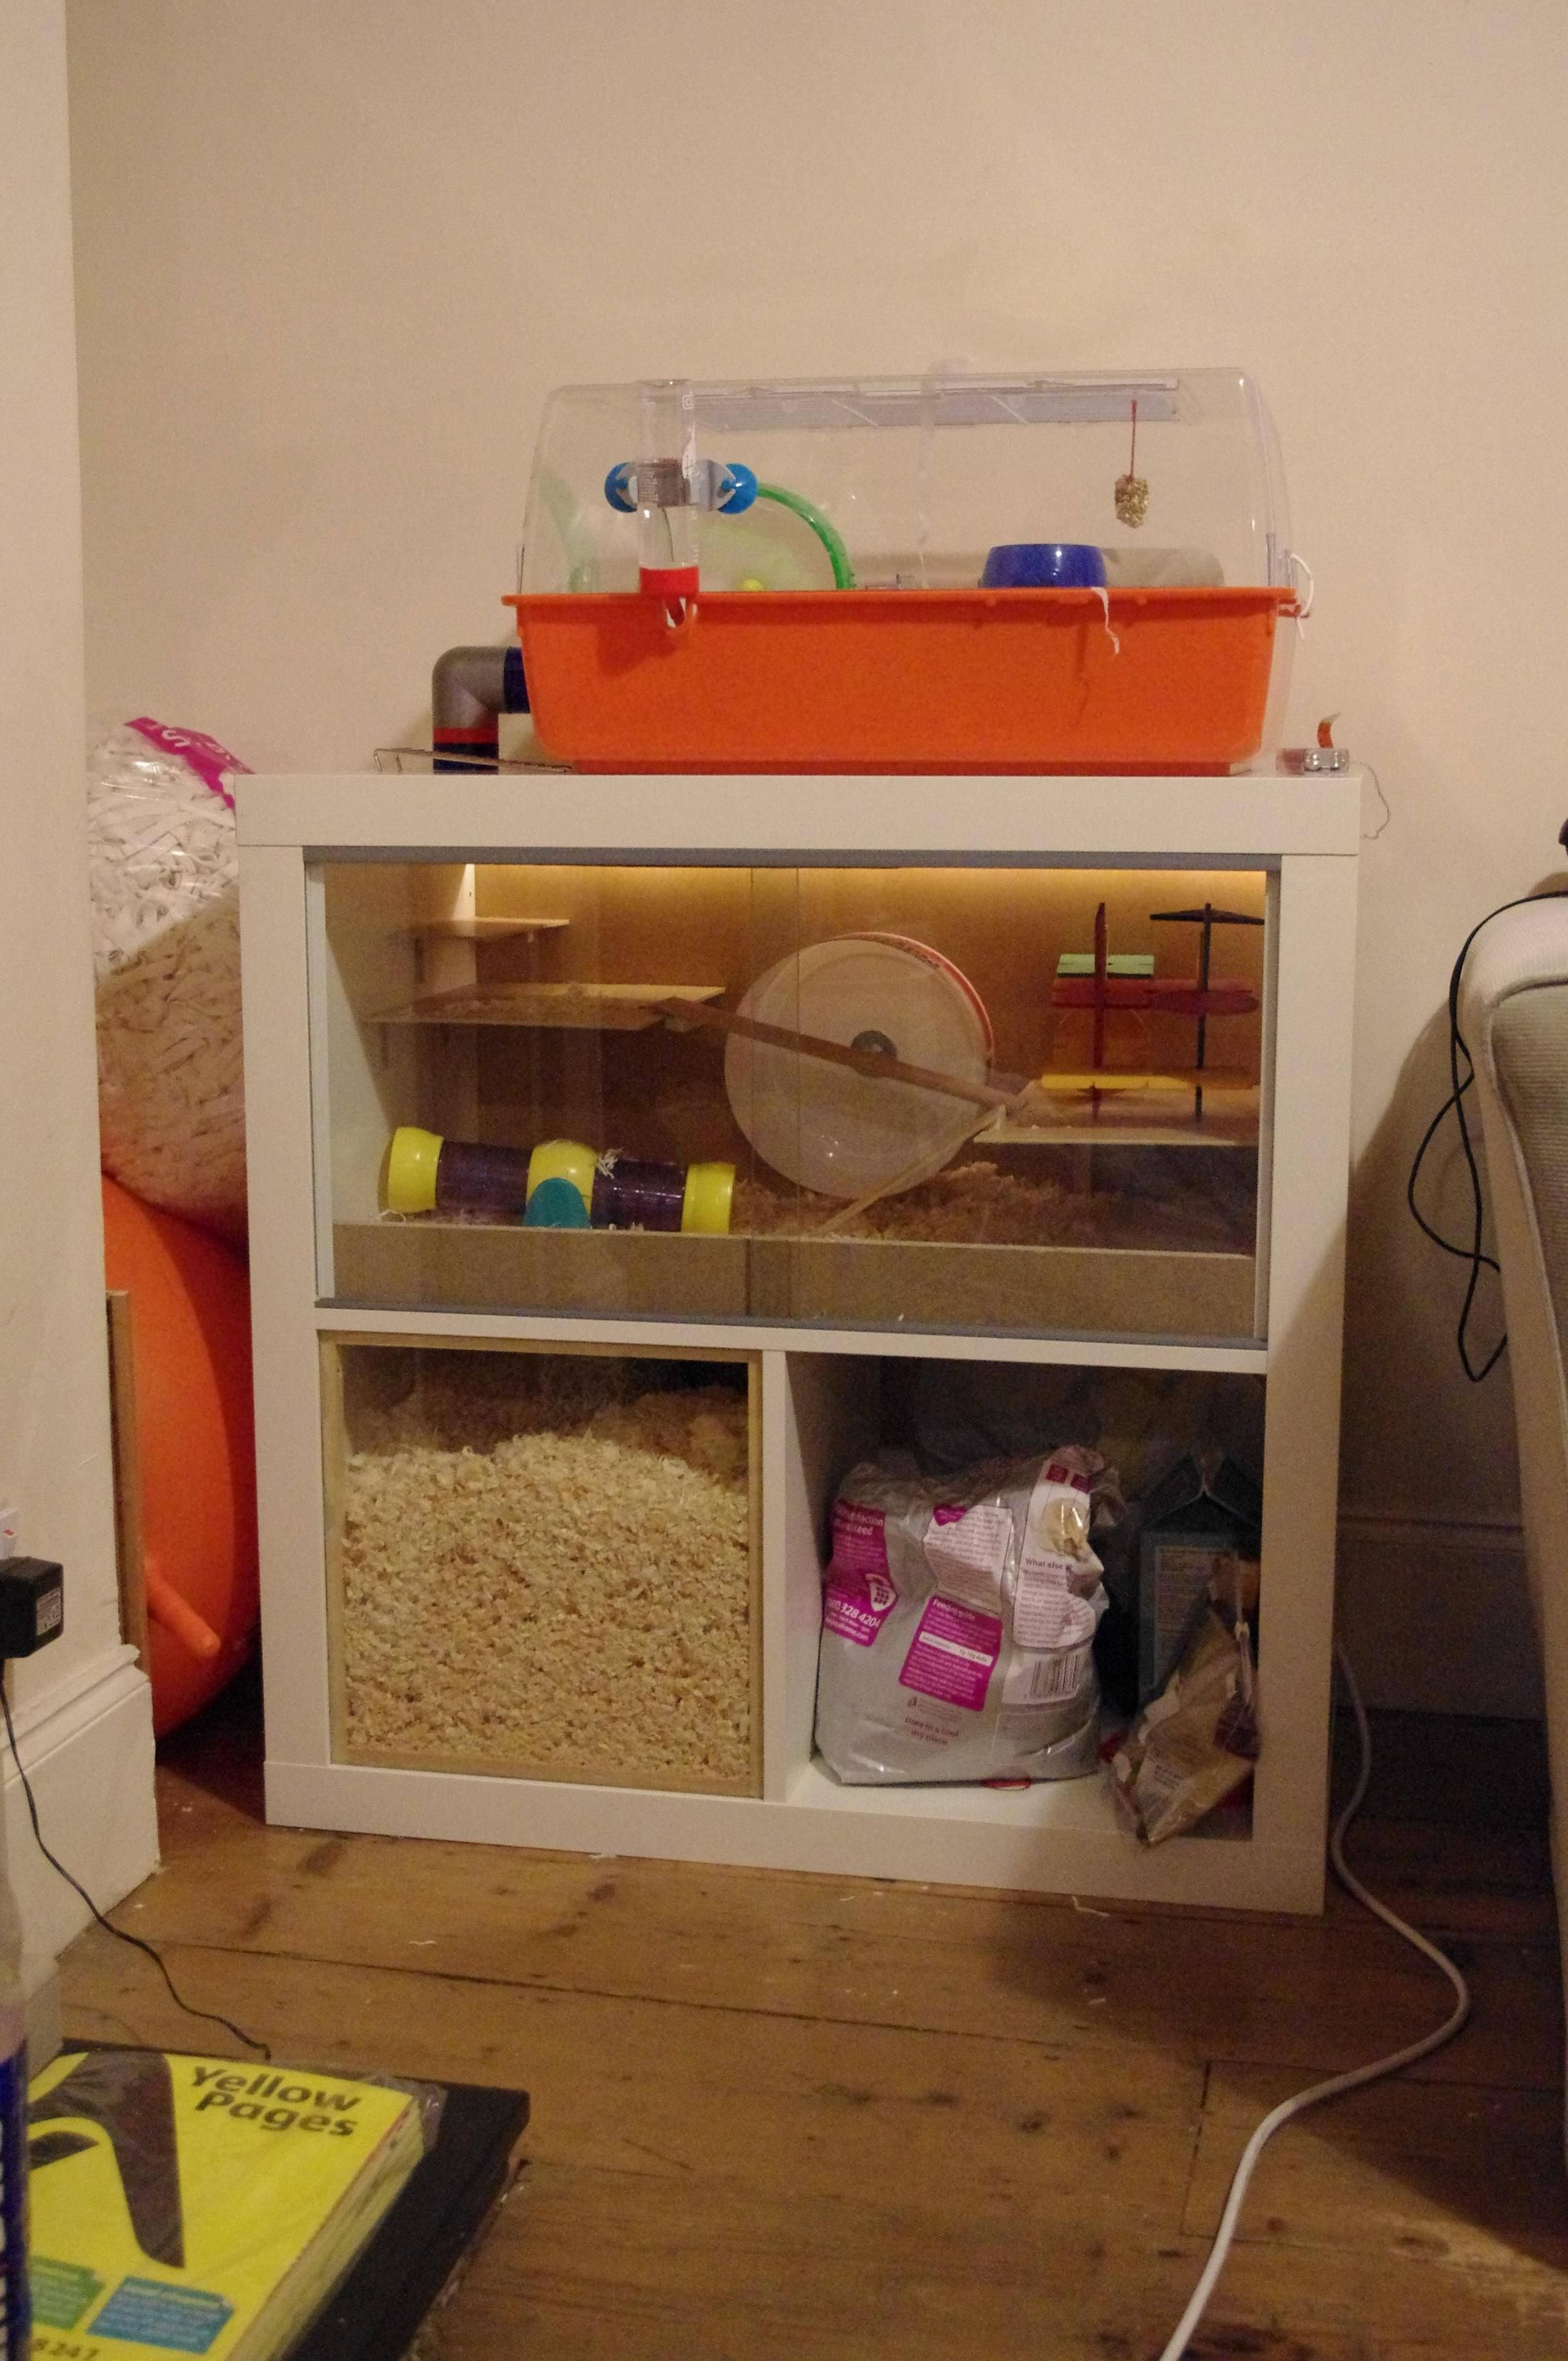 Ikea hack hamster cage hamster cages ikea hack and gerbil for How to build a hamster cage